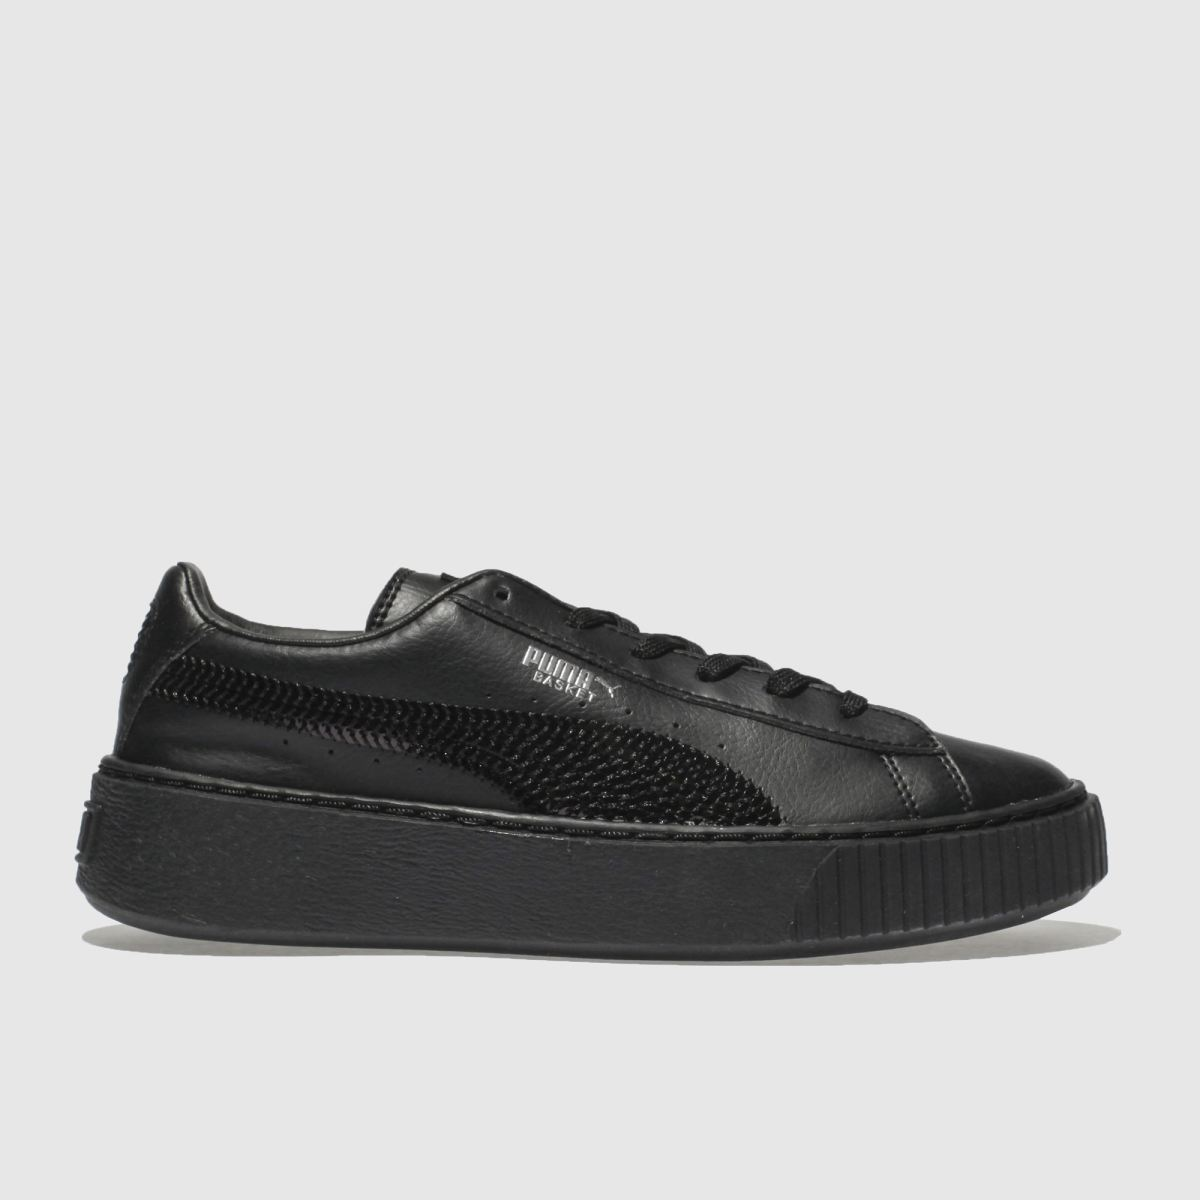 Puma Black Basket Platform Bling Trainers Junior